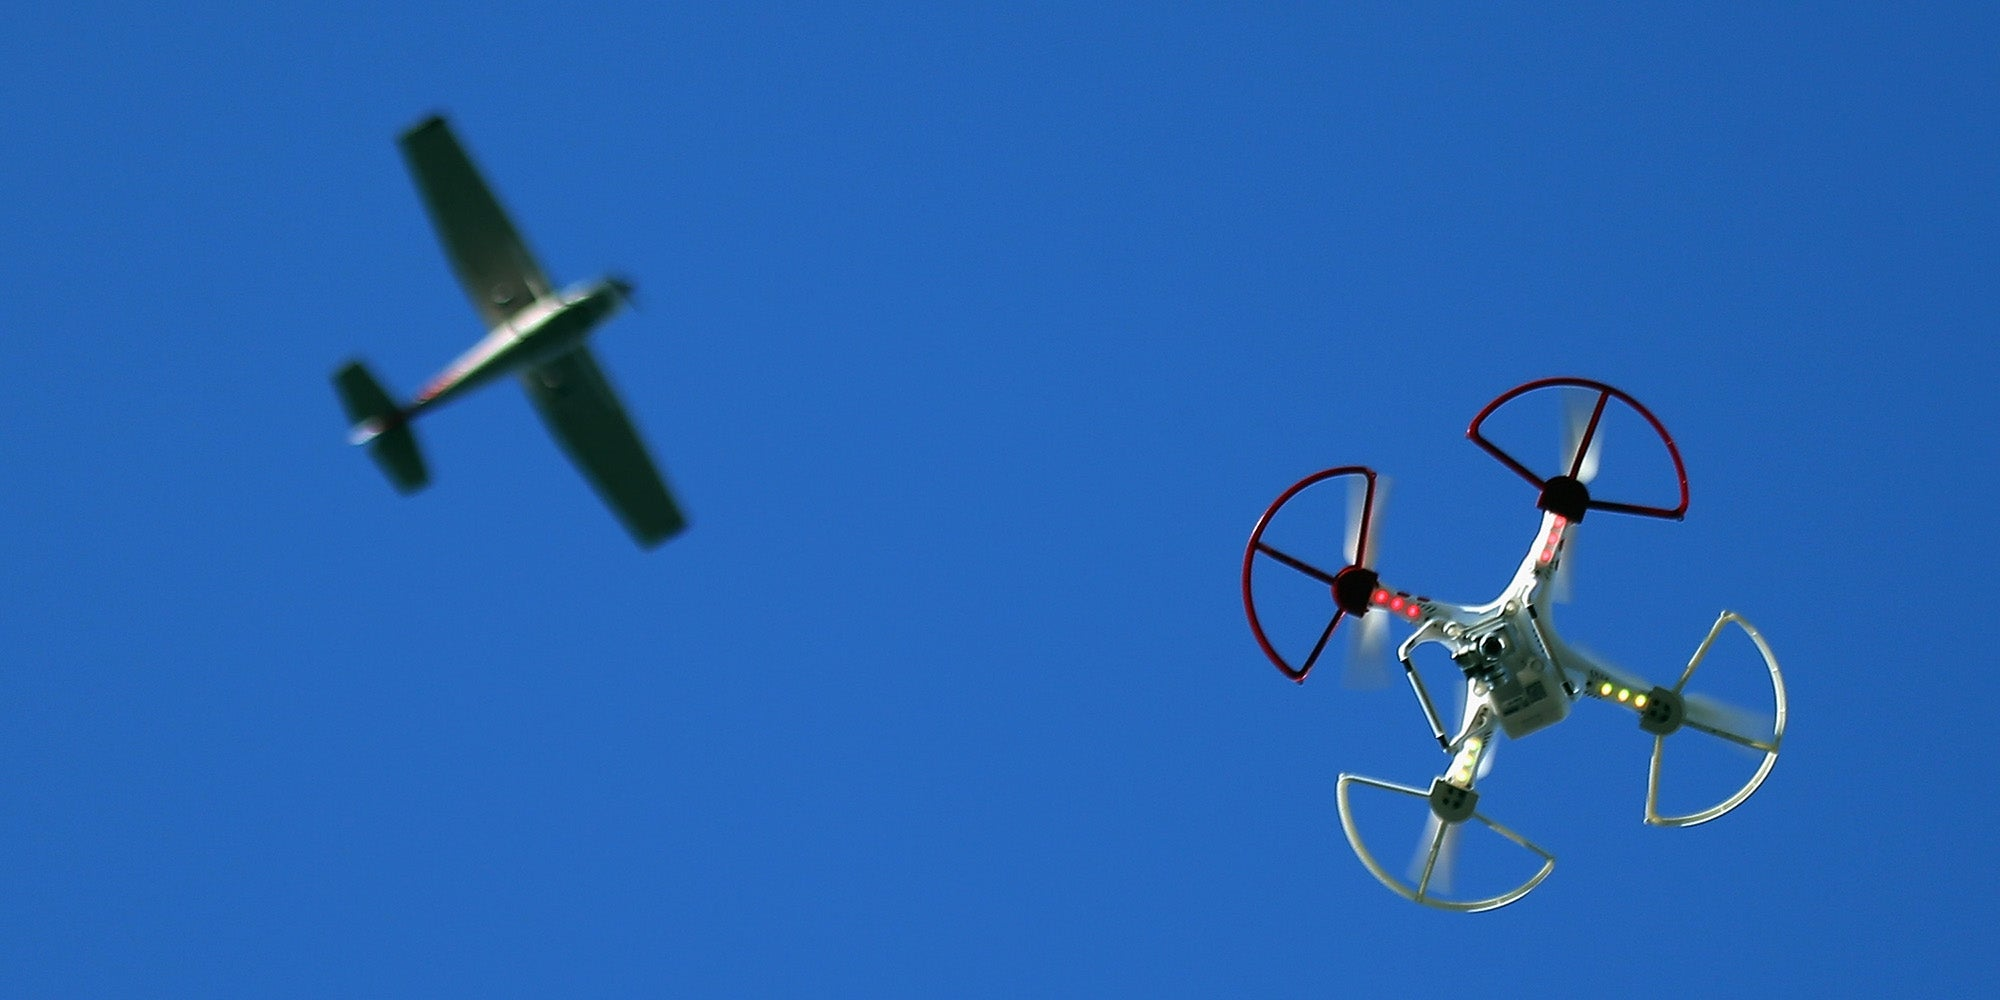 Confirmed: FAA Will Require Registration for Some Small Drones